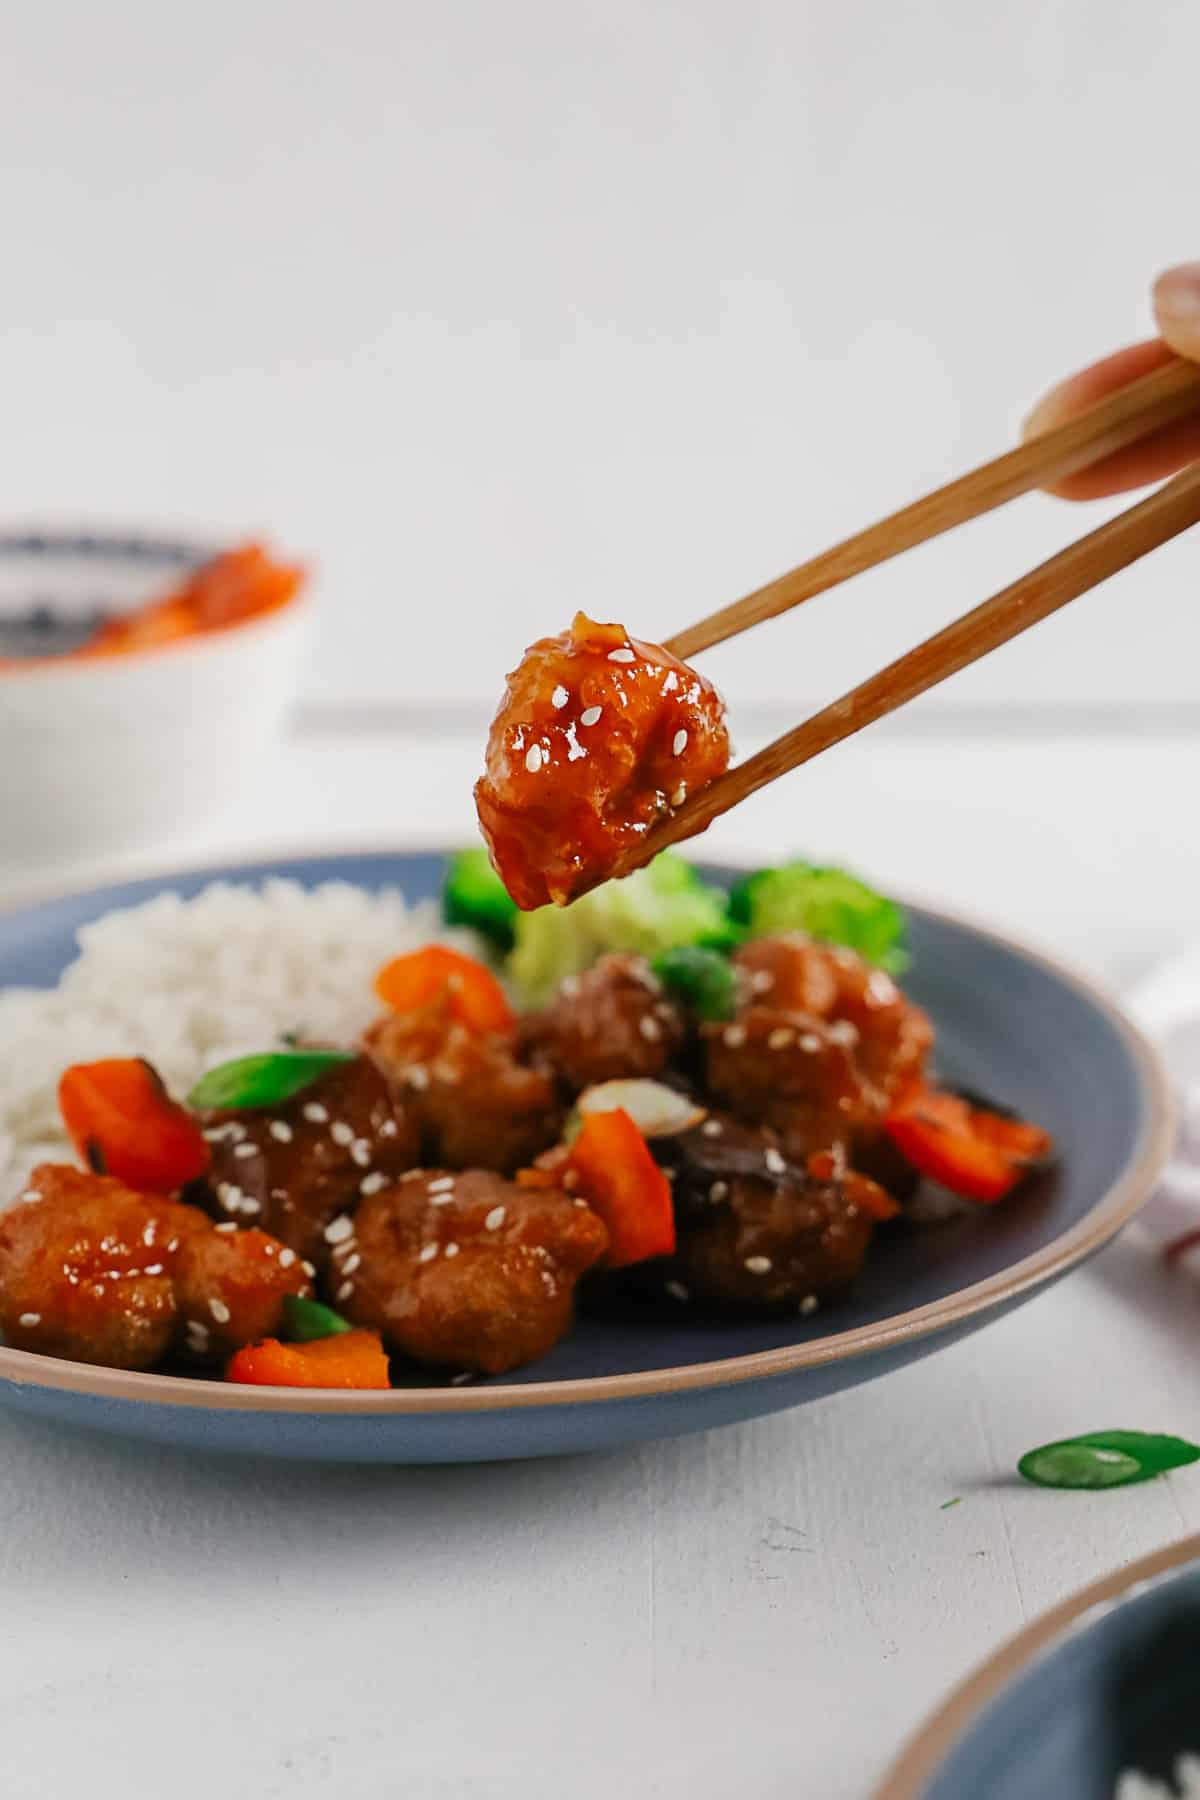 Picking up sweet and sour pork with chopsticks.